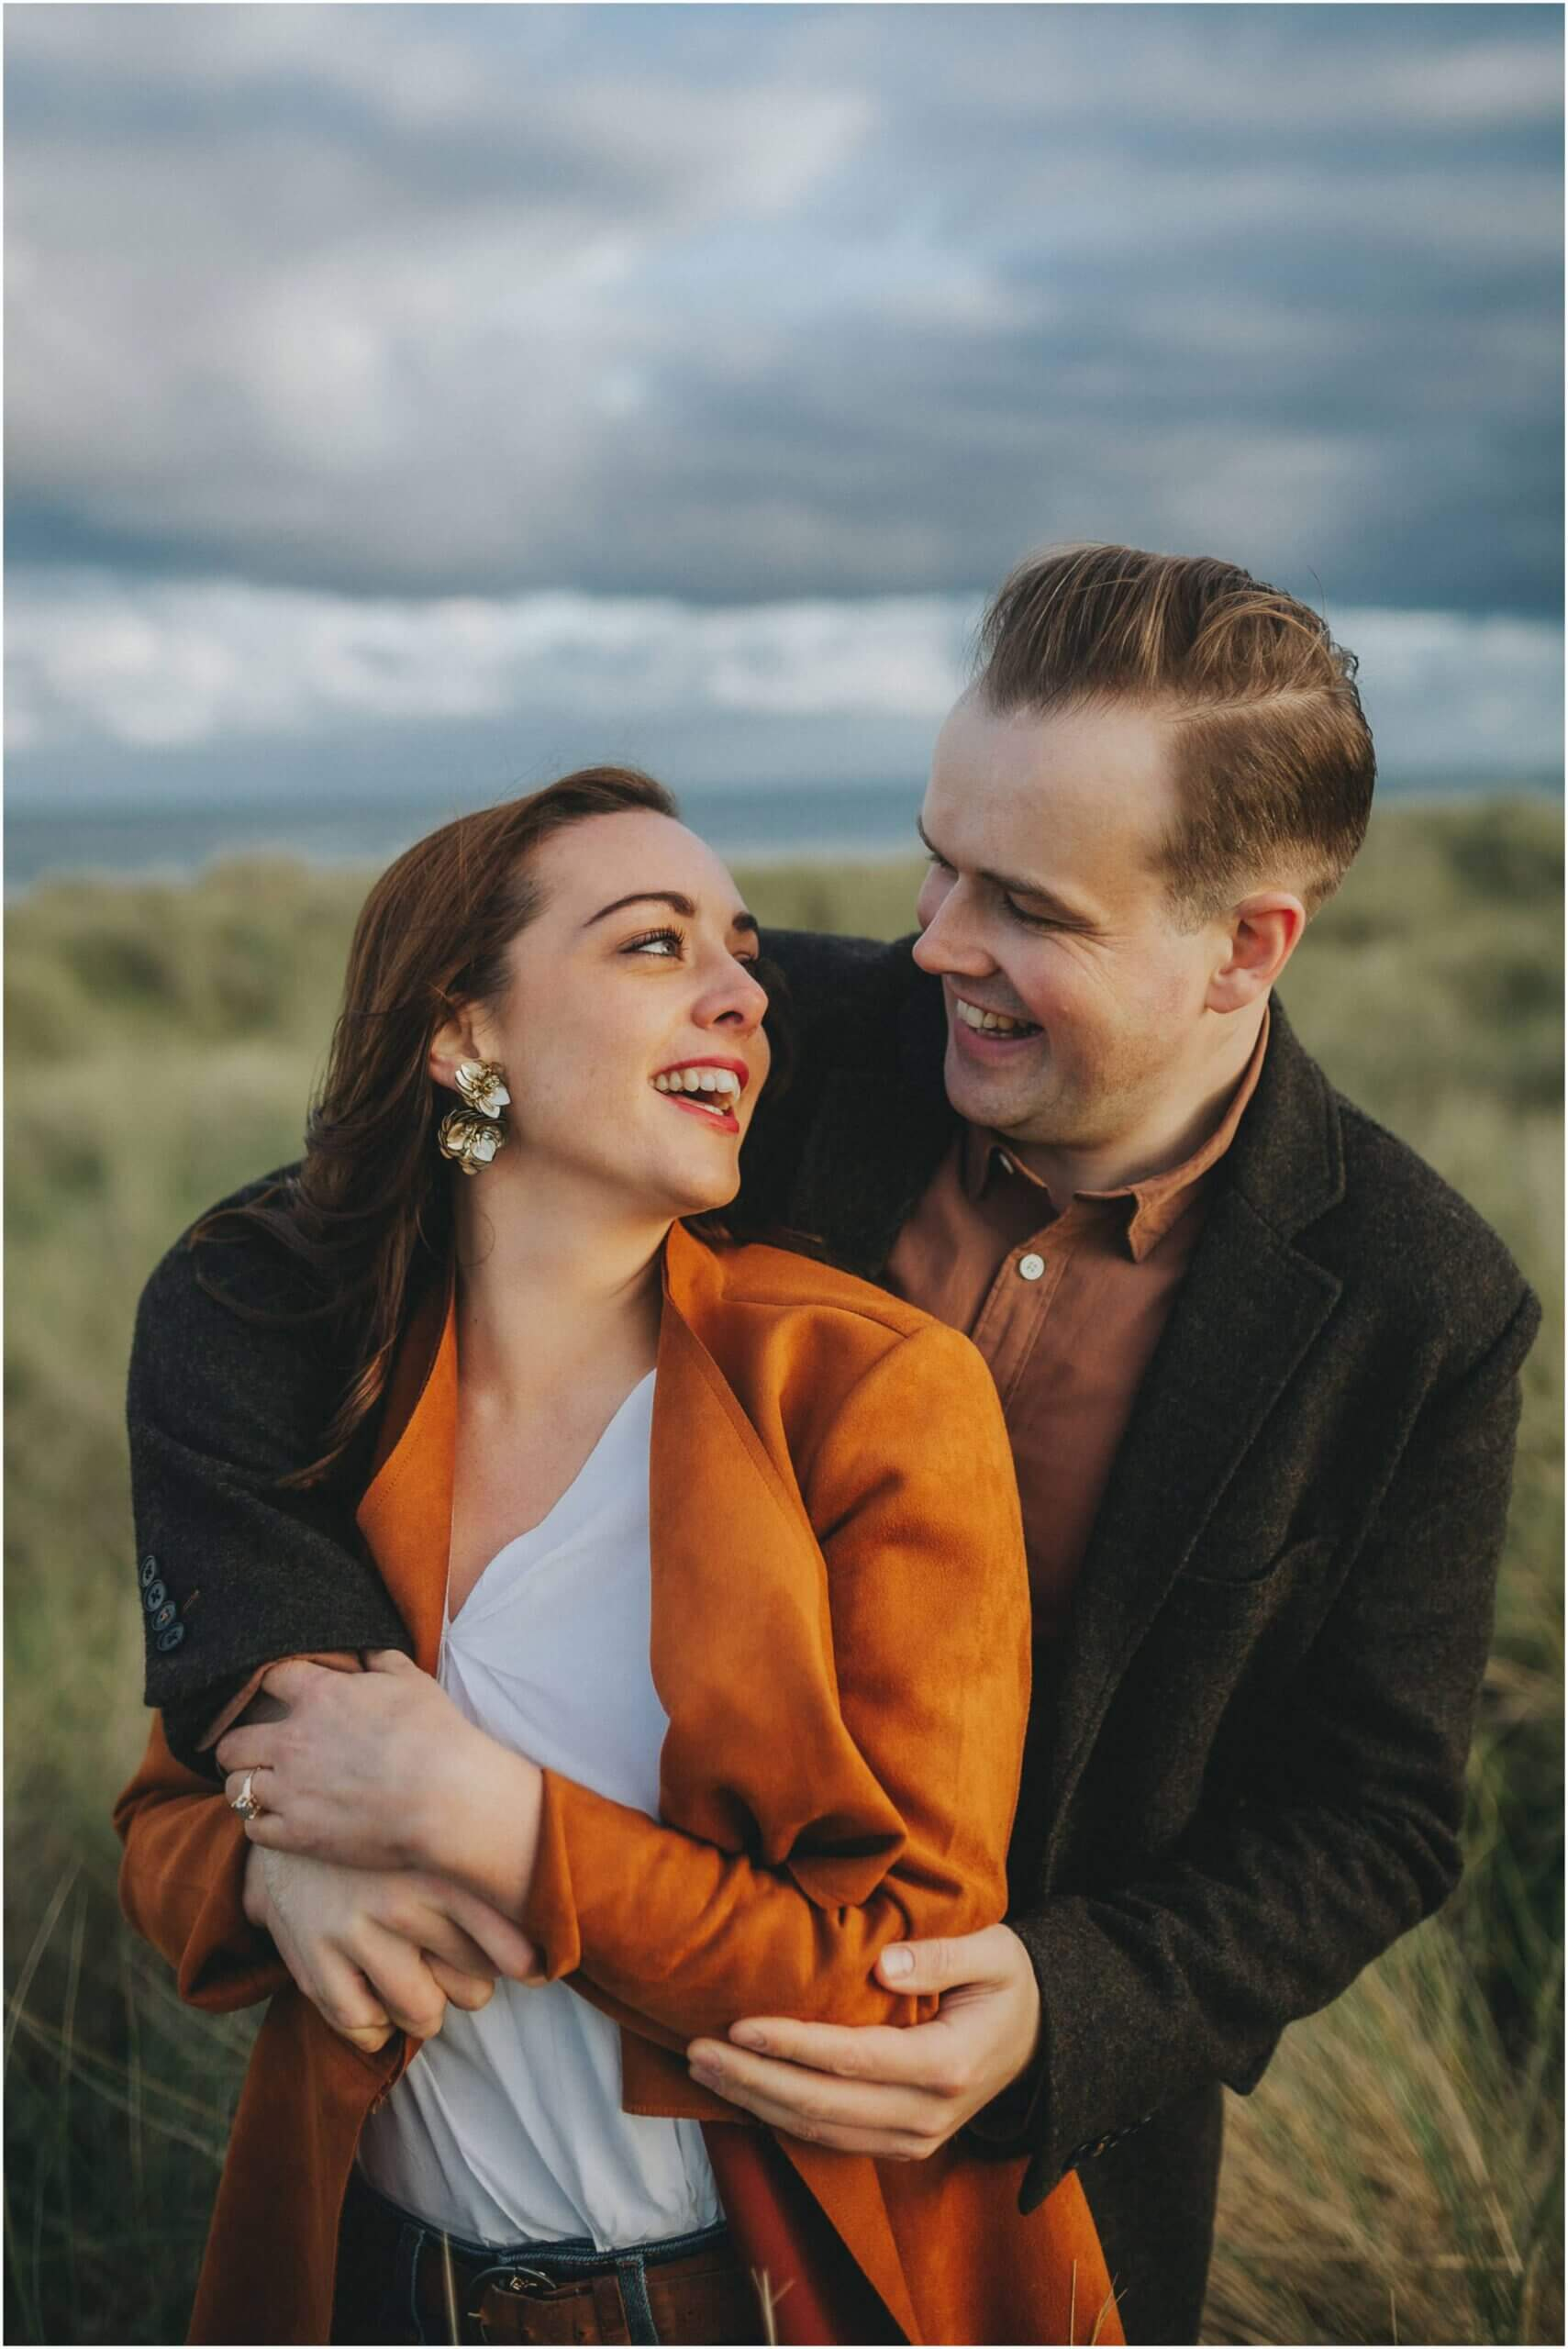 Pre Wedding Mornington beach meath irish wedding elopement photography 00005 scaled - Fun and Relaxed wedding and elopement photography in Ireland, perfect for adventurous and outdoorsy couples